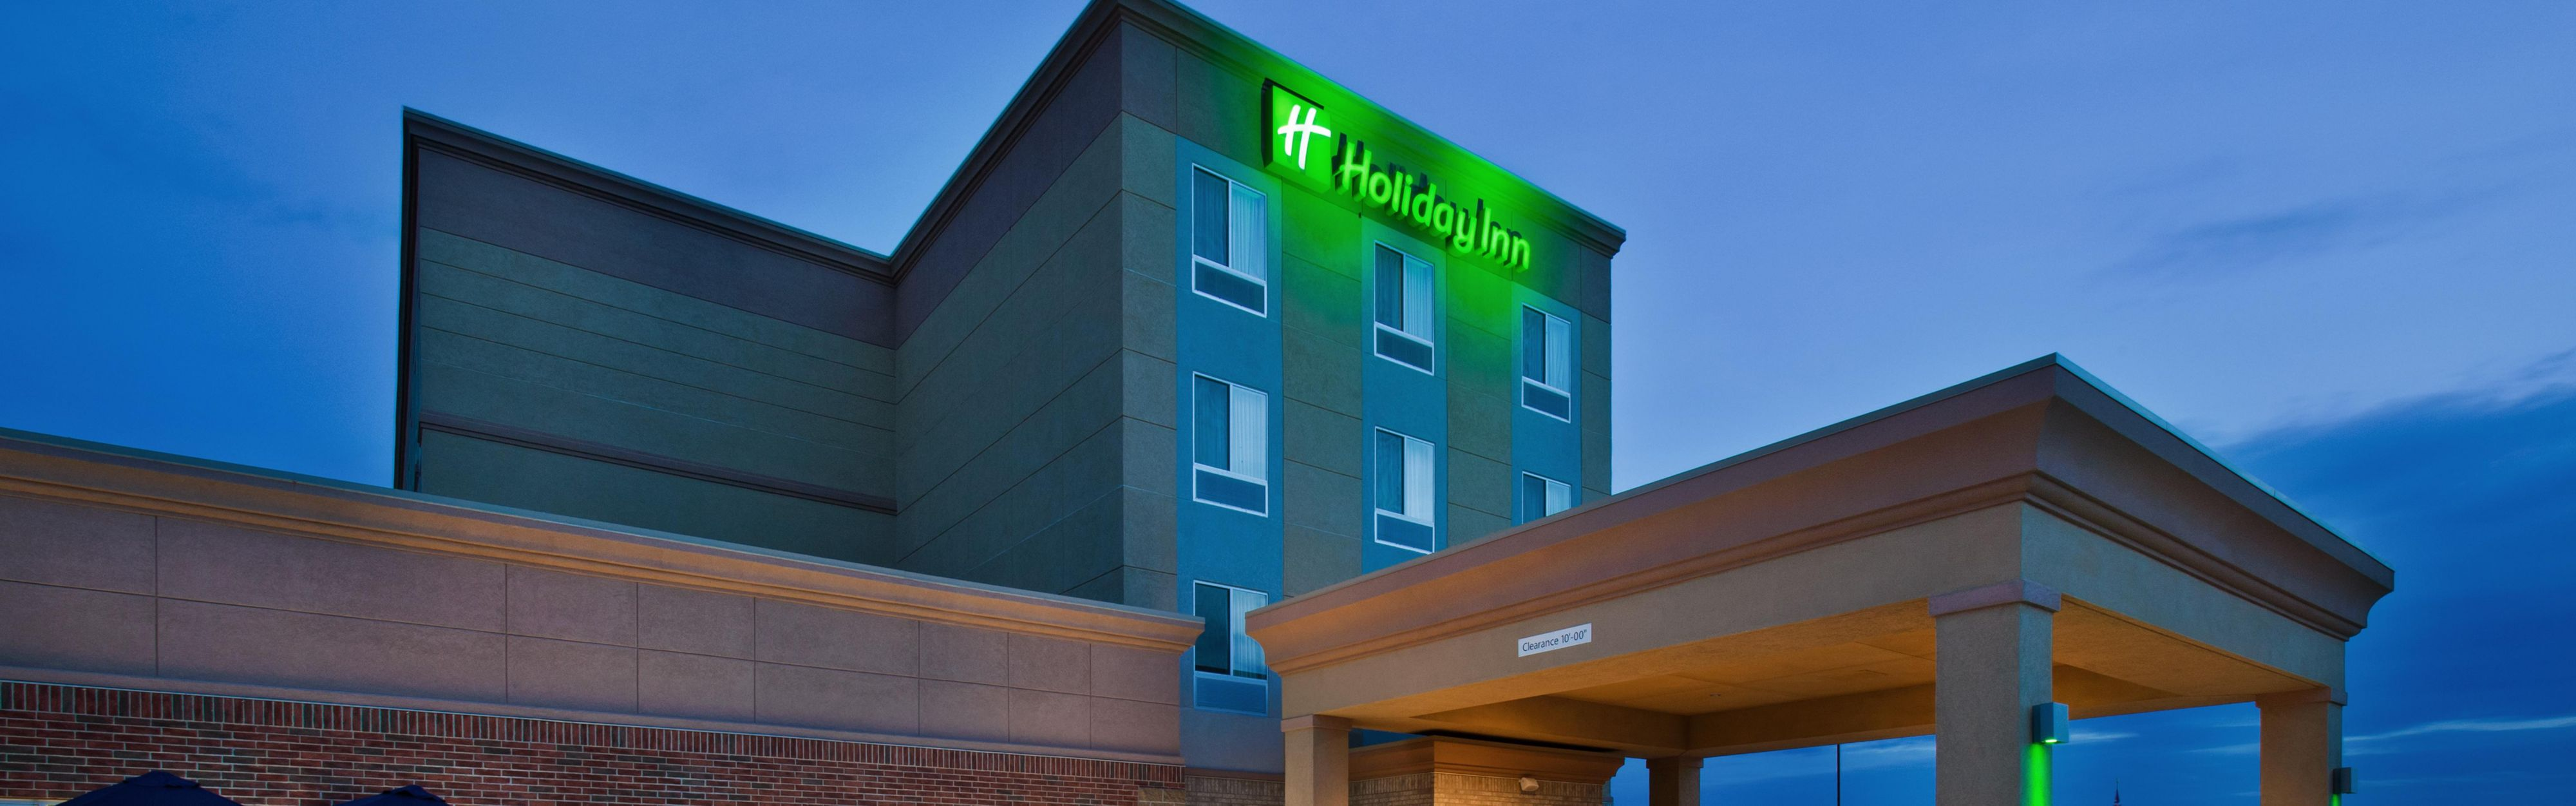 Holiday Inn Lincoln Southwest image 0